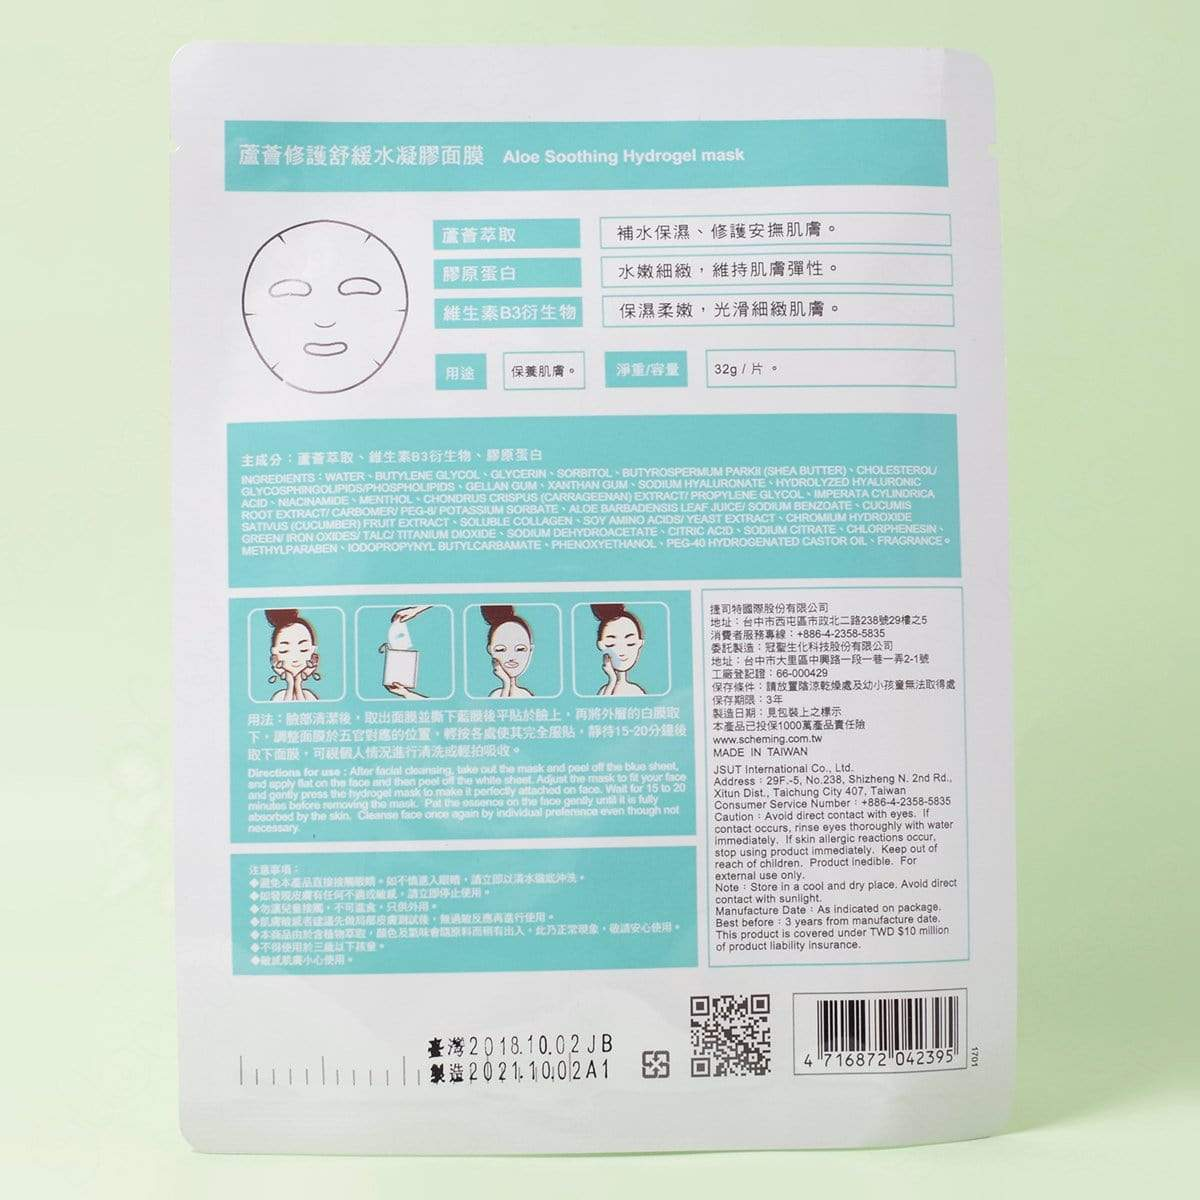 My Scheming Aloe Soothing Hydrogel Sheet Mask